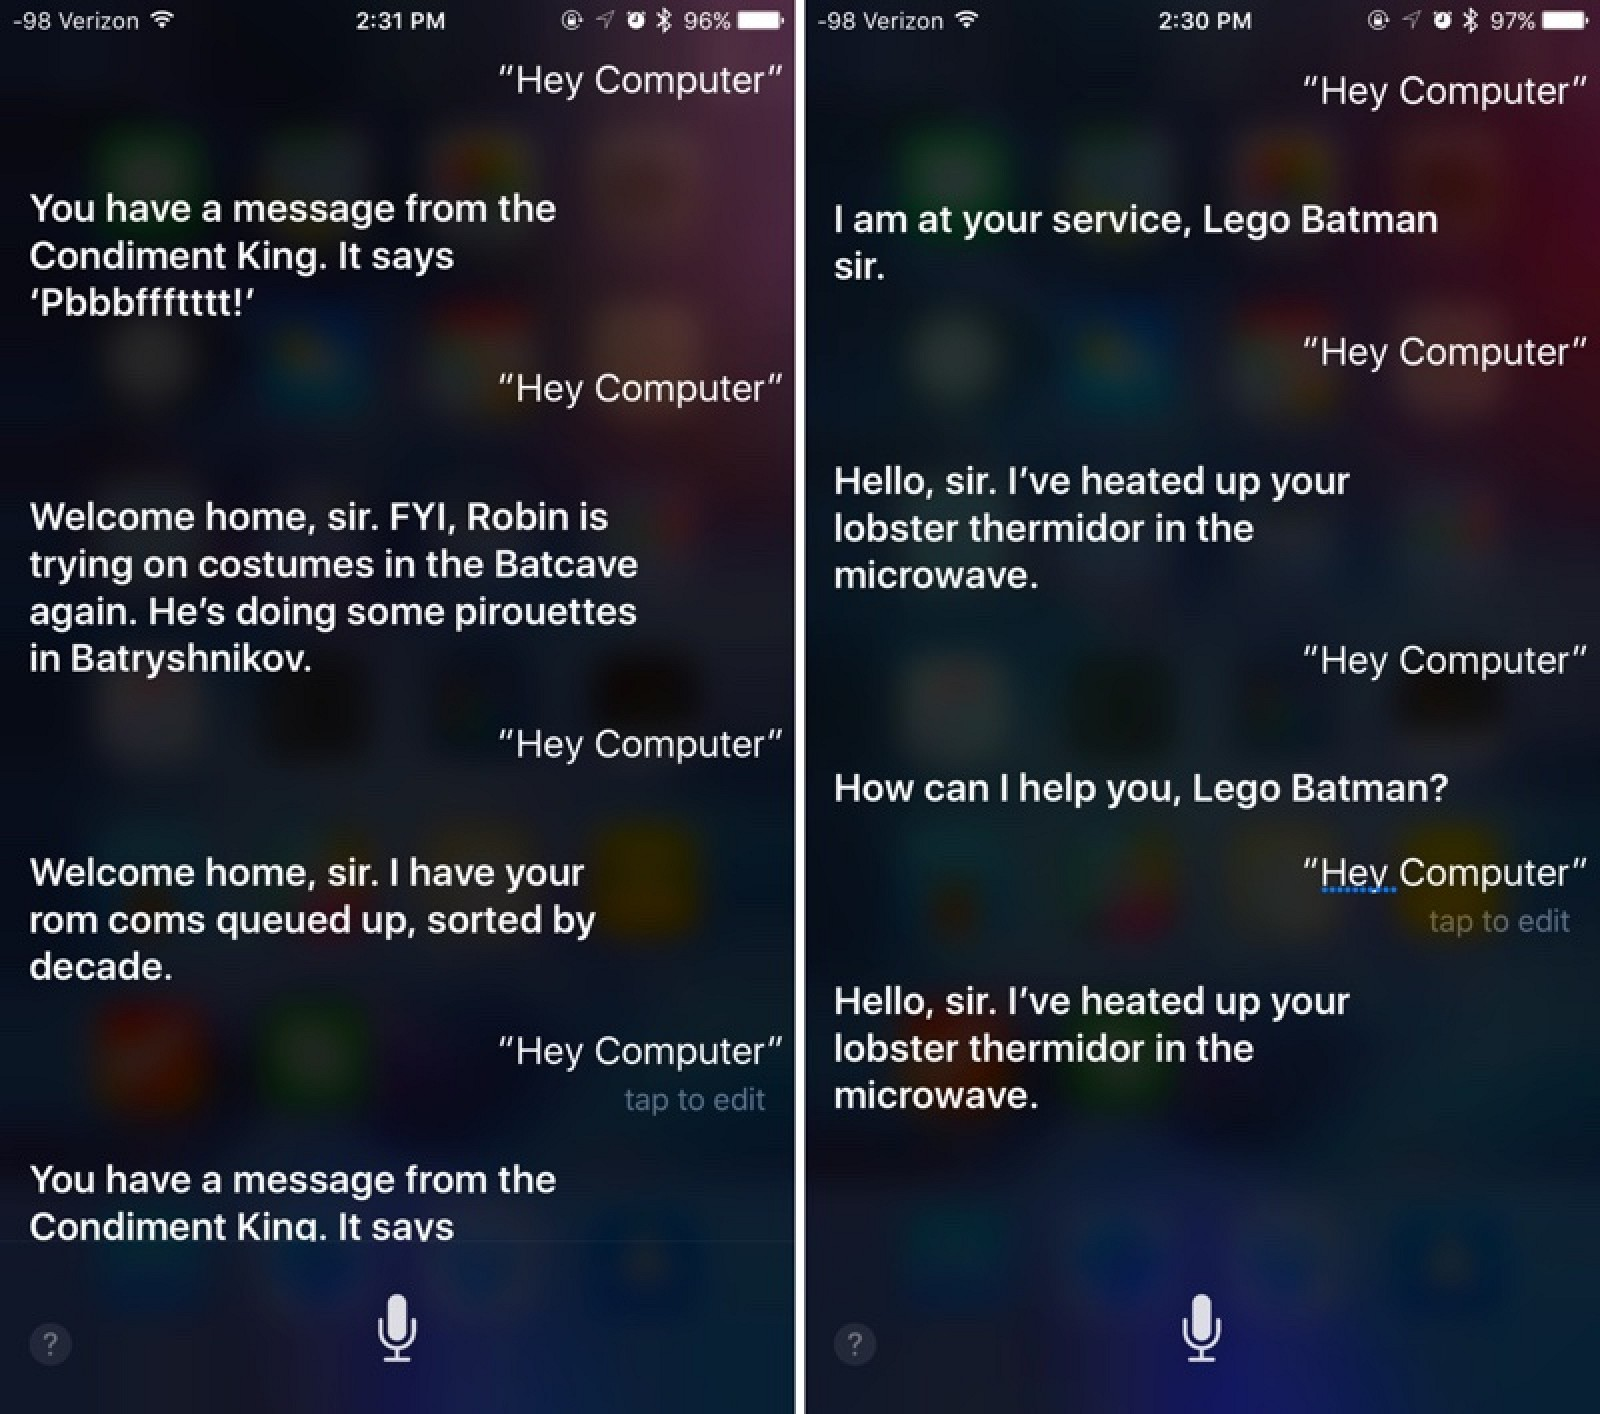 My Latest Article On Things: Apple's Siri Promotes The LEGO Batman Movie When You Say